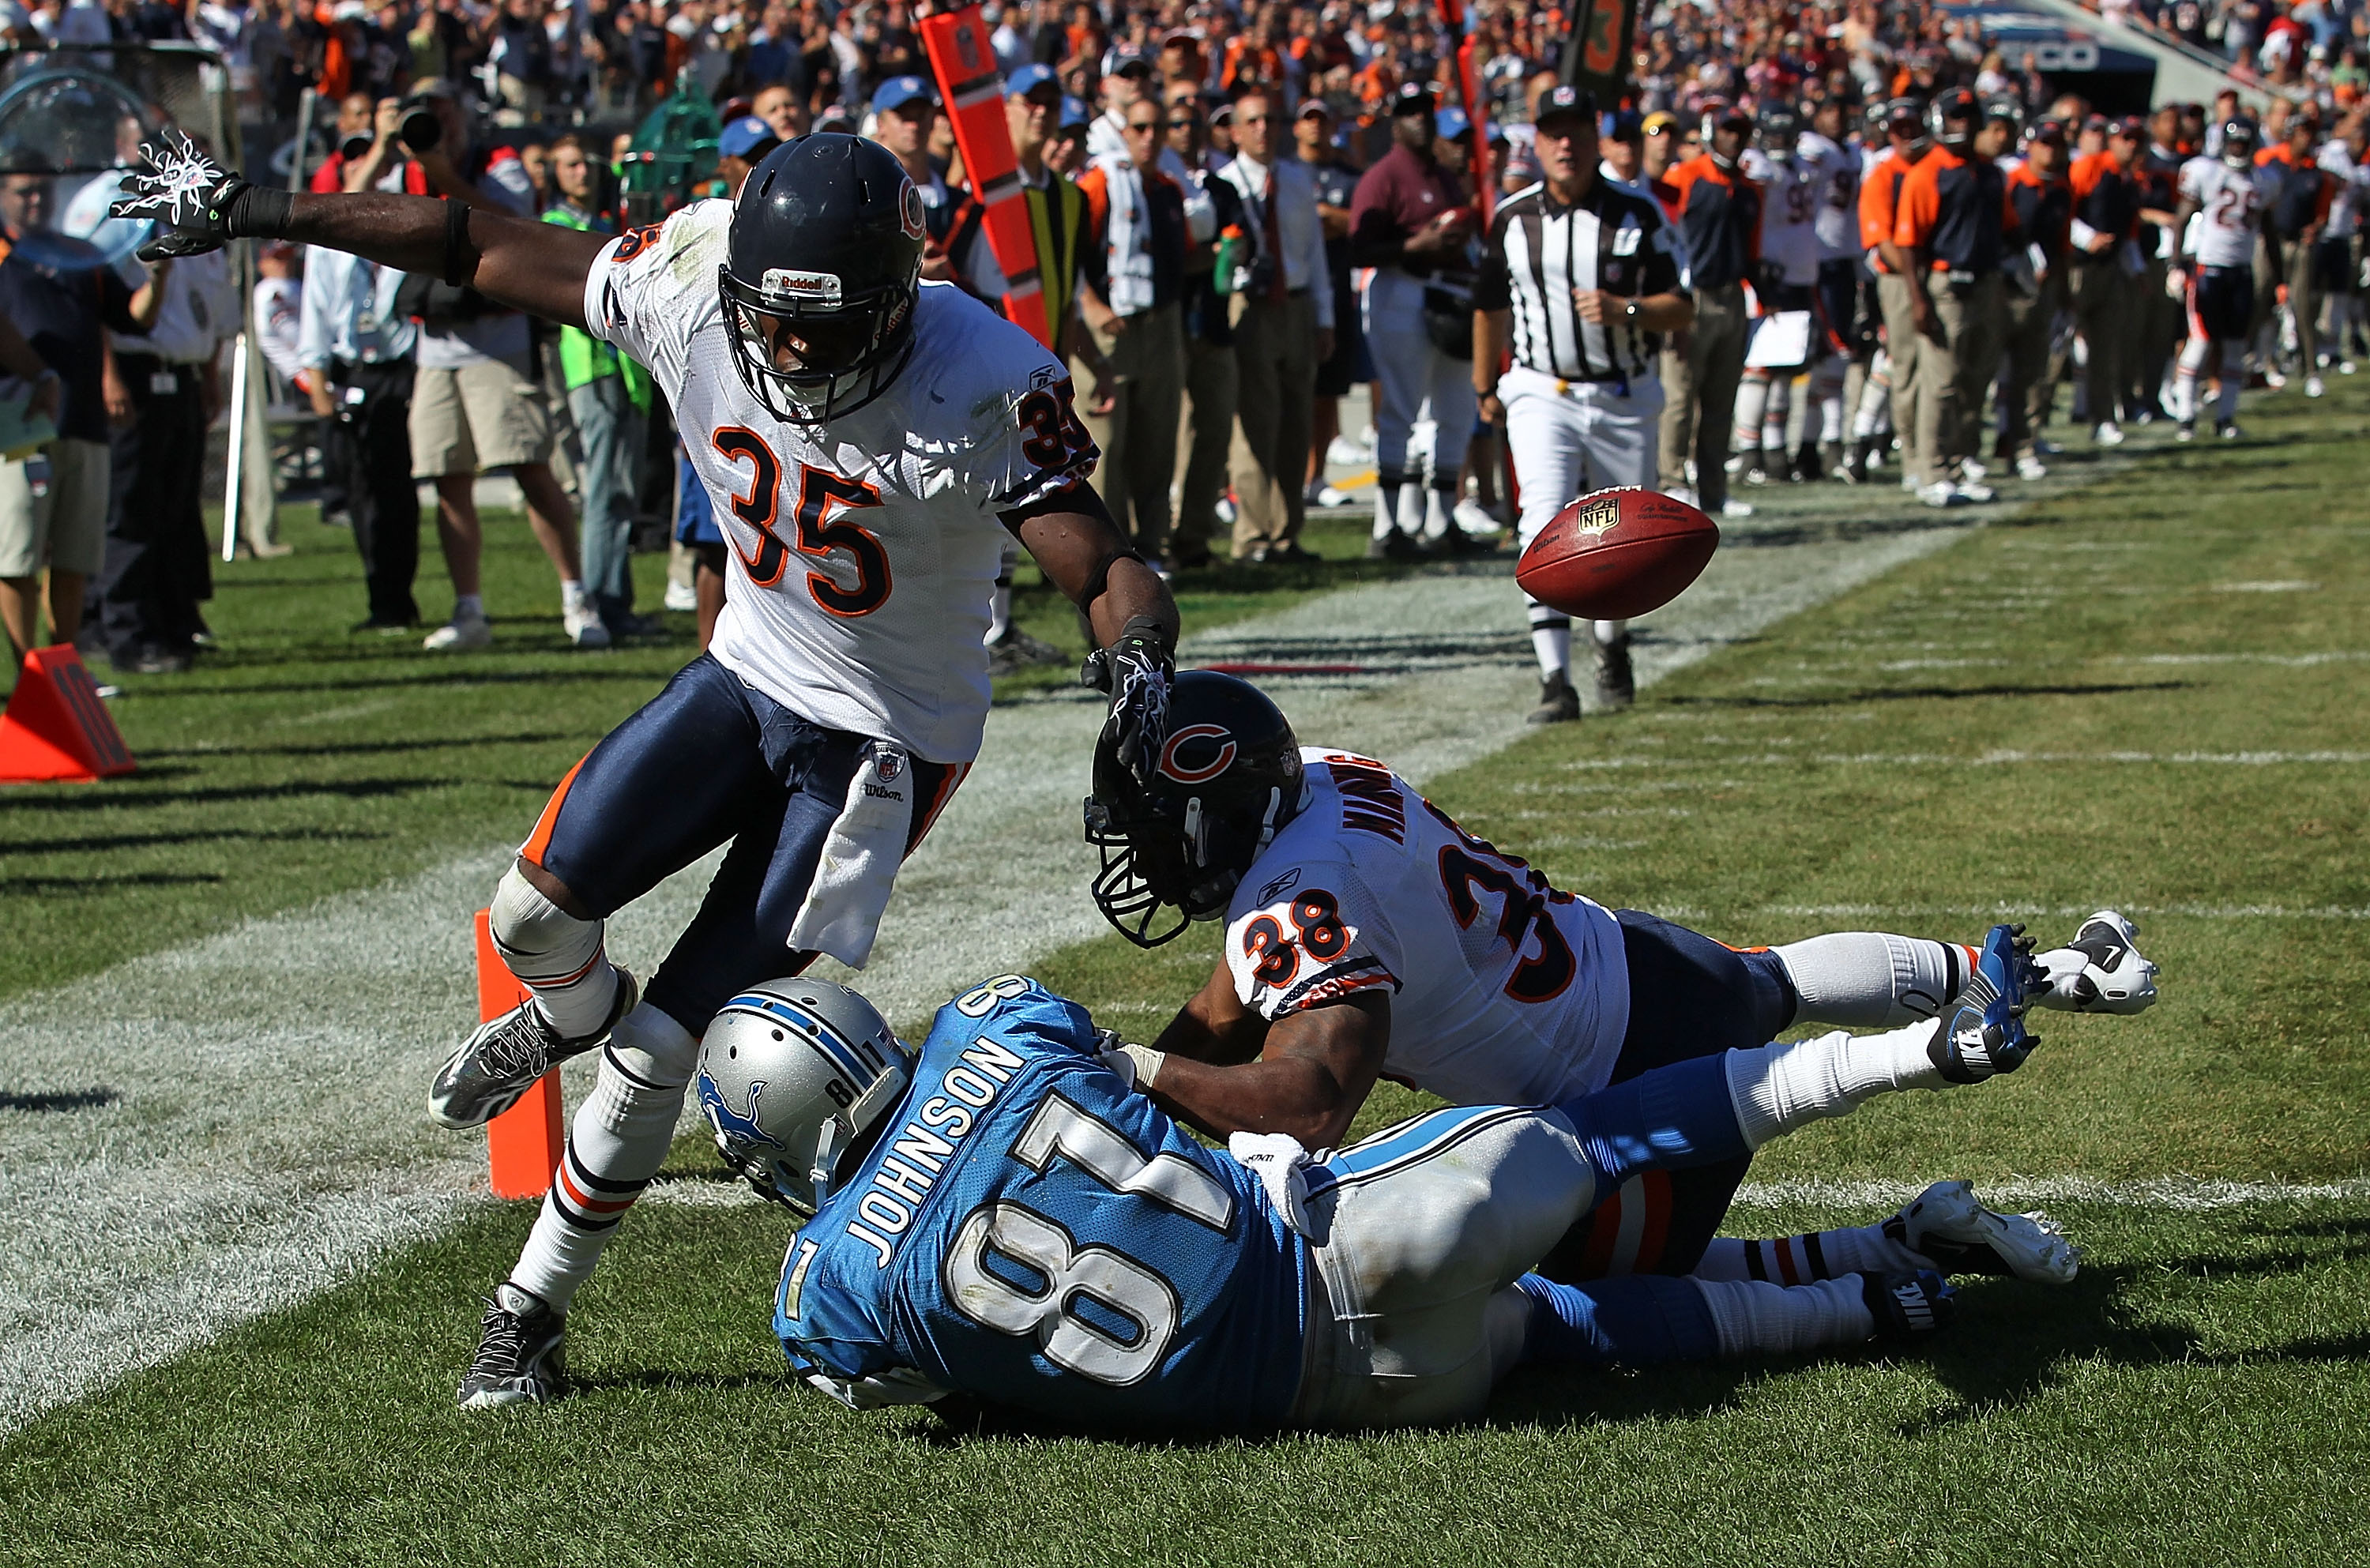 CHICAGO - SEPTEMBER 12: Zack Bowman #35 and Danieal Manning #38 of the Chicago Bears break up a pass intended for Calvin Johnson #81 of the Detroit Lions during the NFL season opening game at Soldier Field on September 12, 2010 in Chicago, Illinois. The B